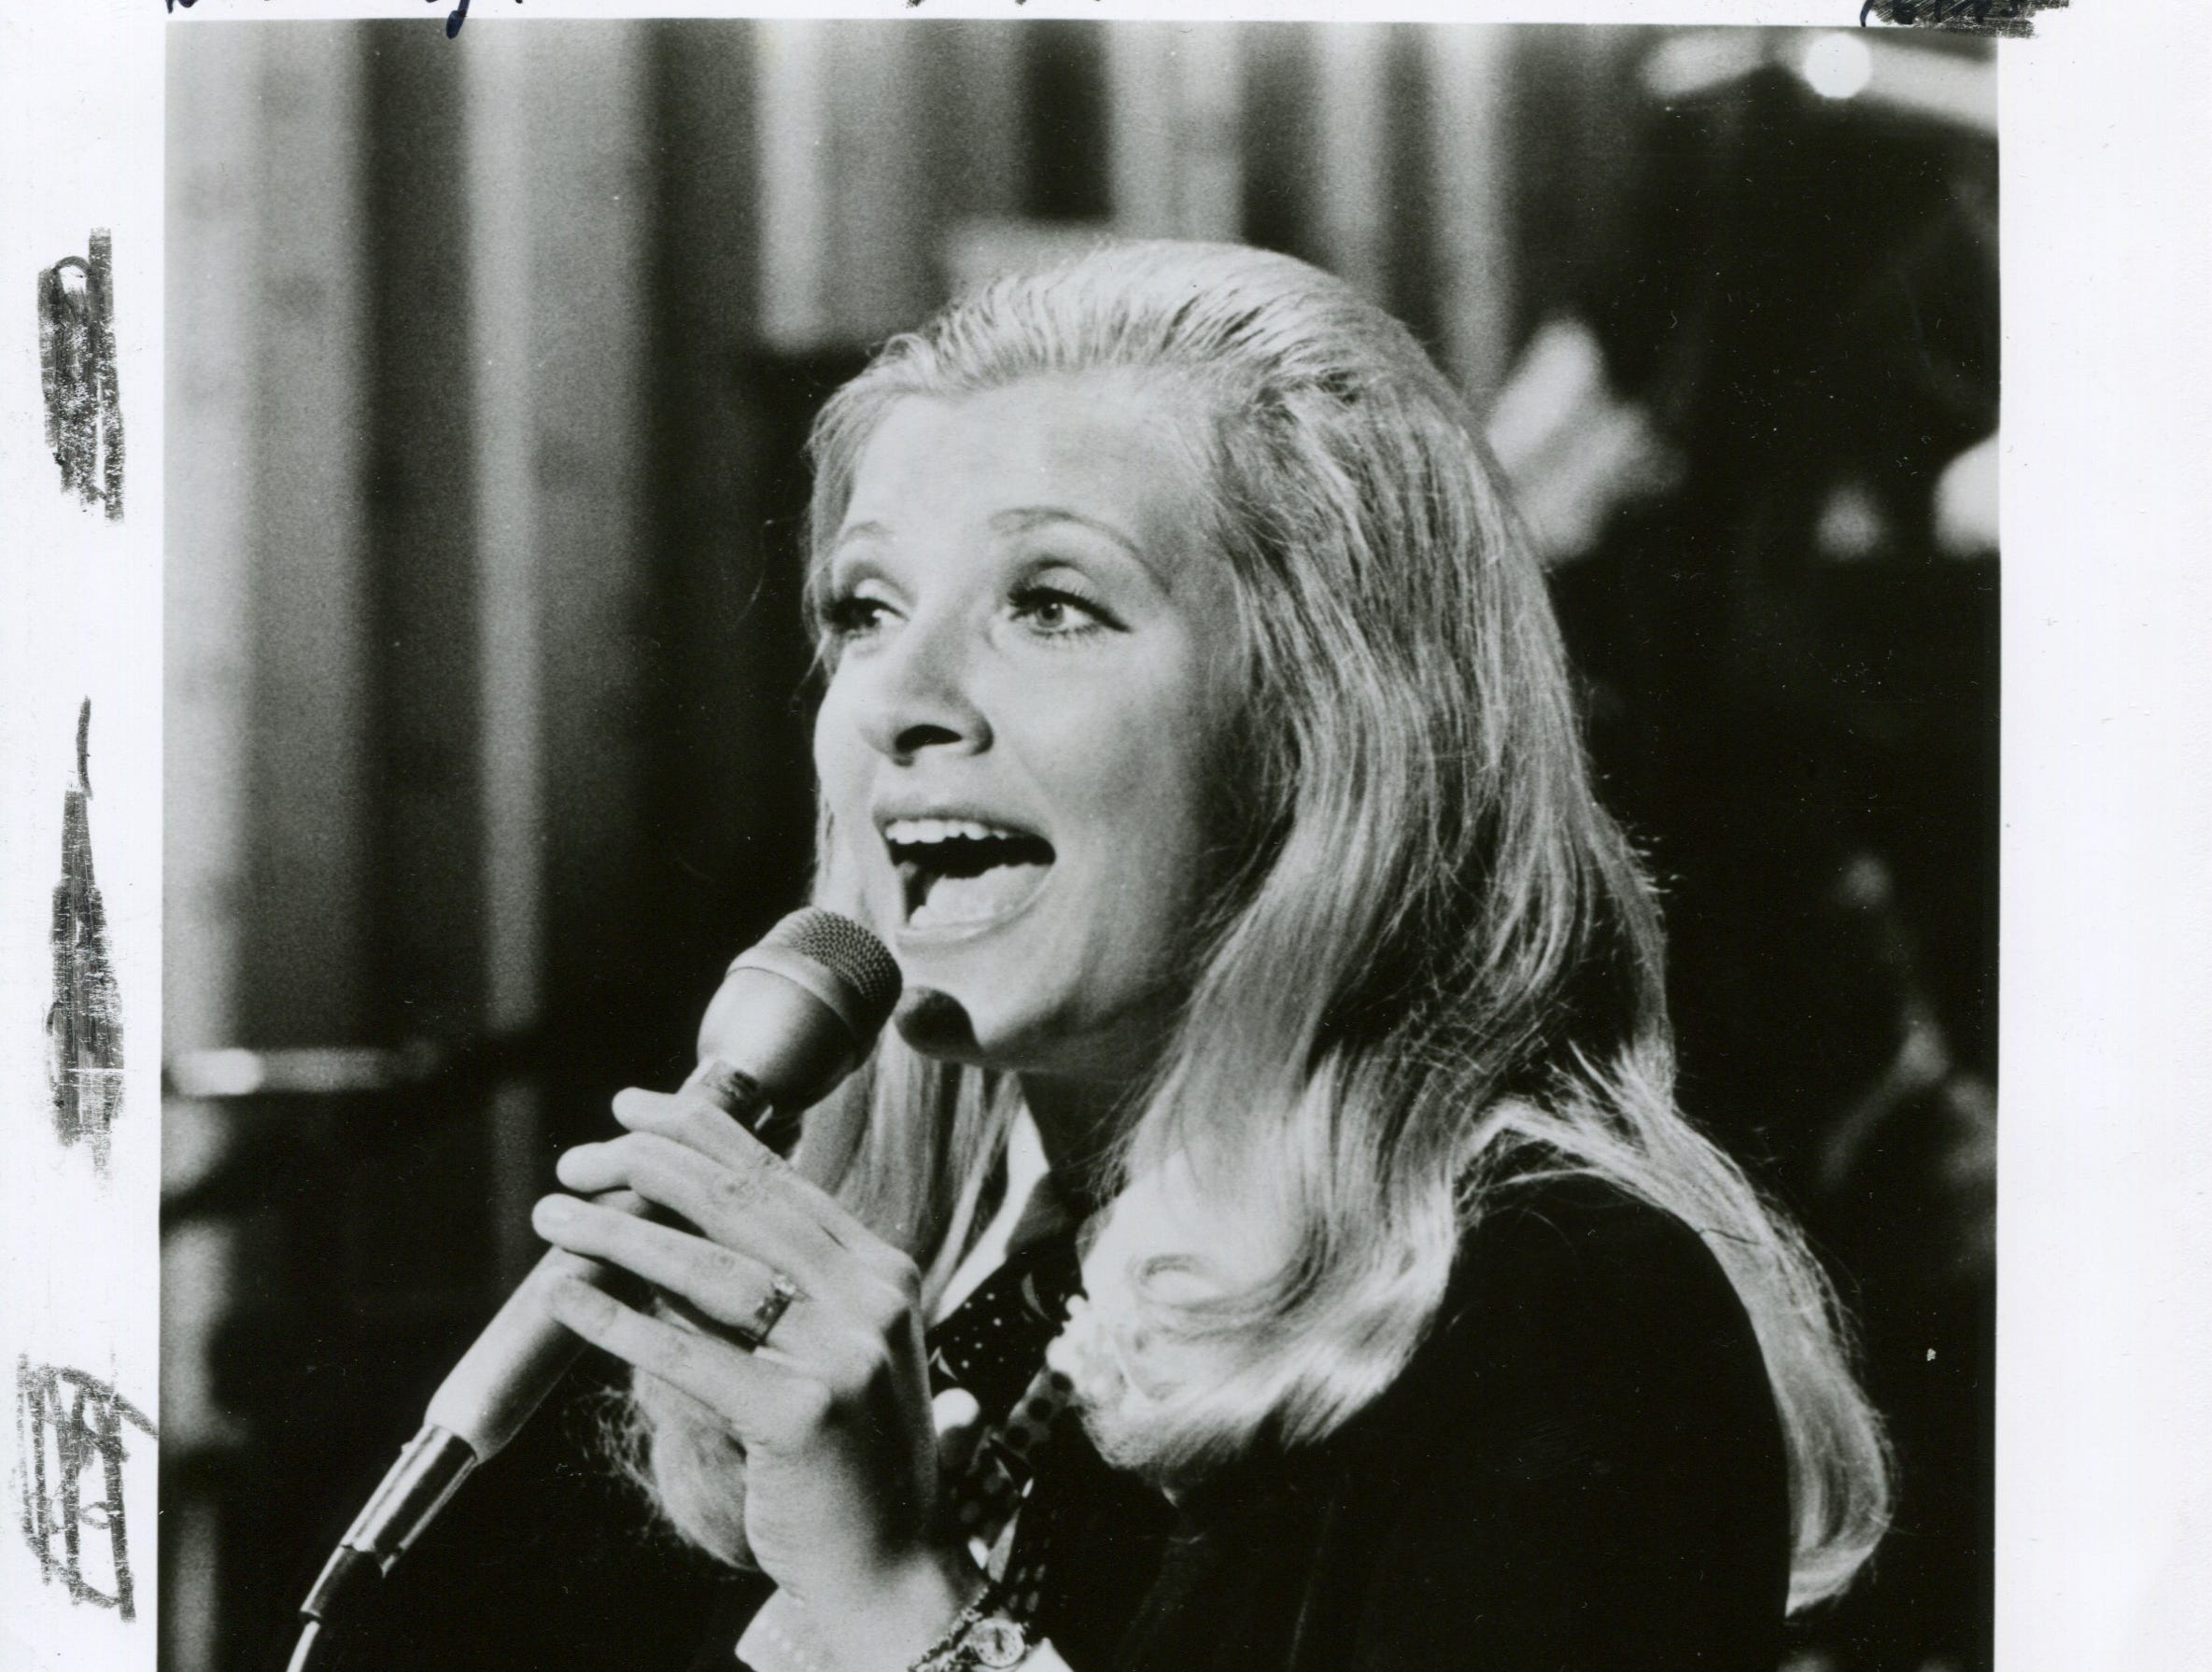 Knoxville native Ava Barber in April 22, 1979. Barber performed on the Lawrence Welk Show between 1974 and 1982.